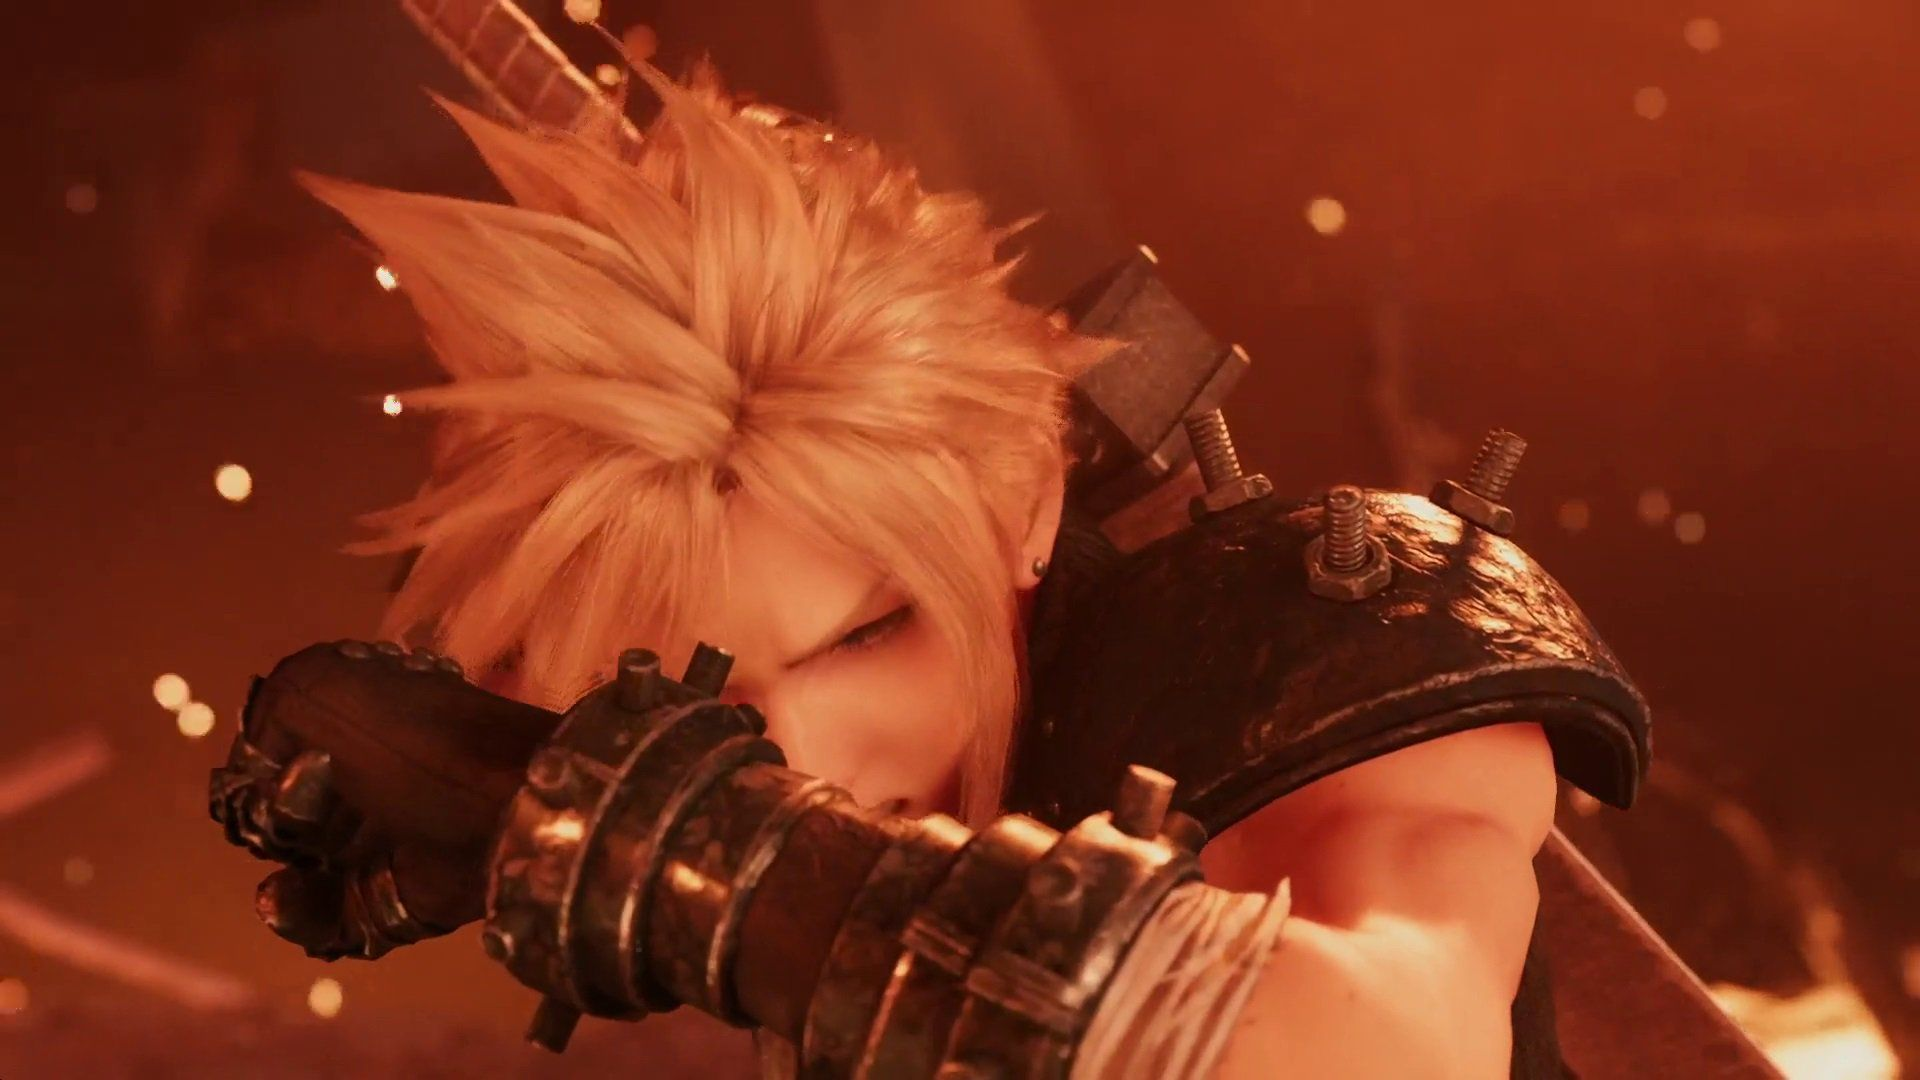 Sony's State of Play 5/9 Square Enix Drops Final Fantasy